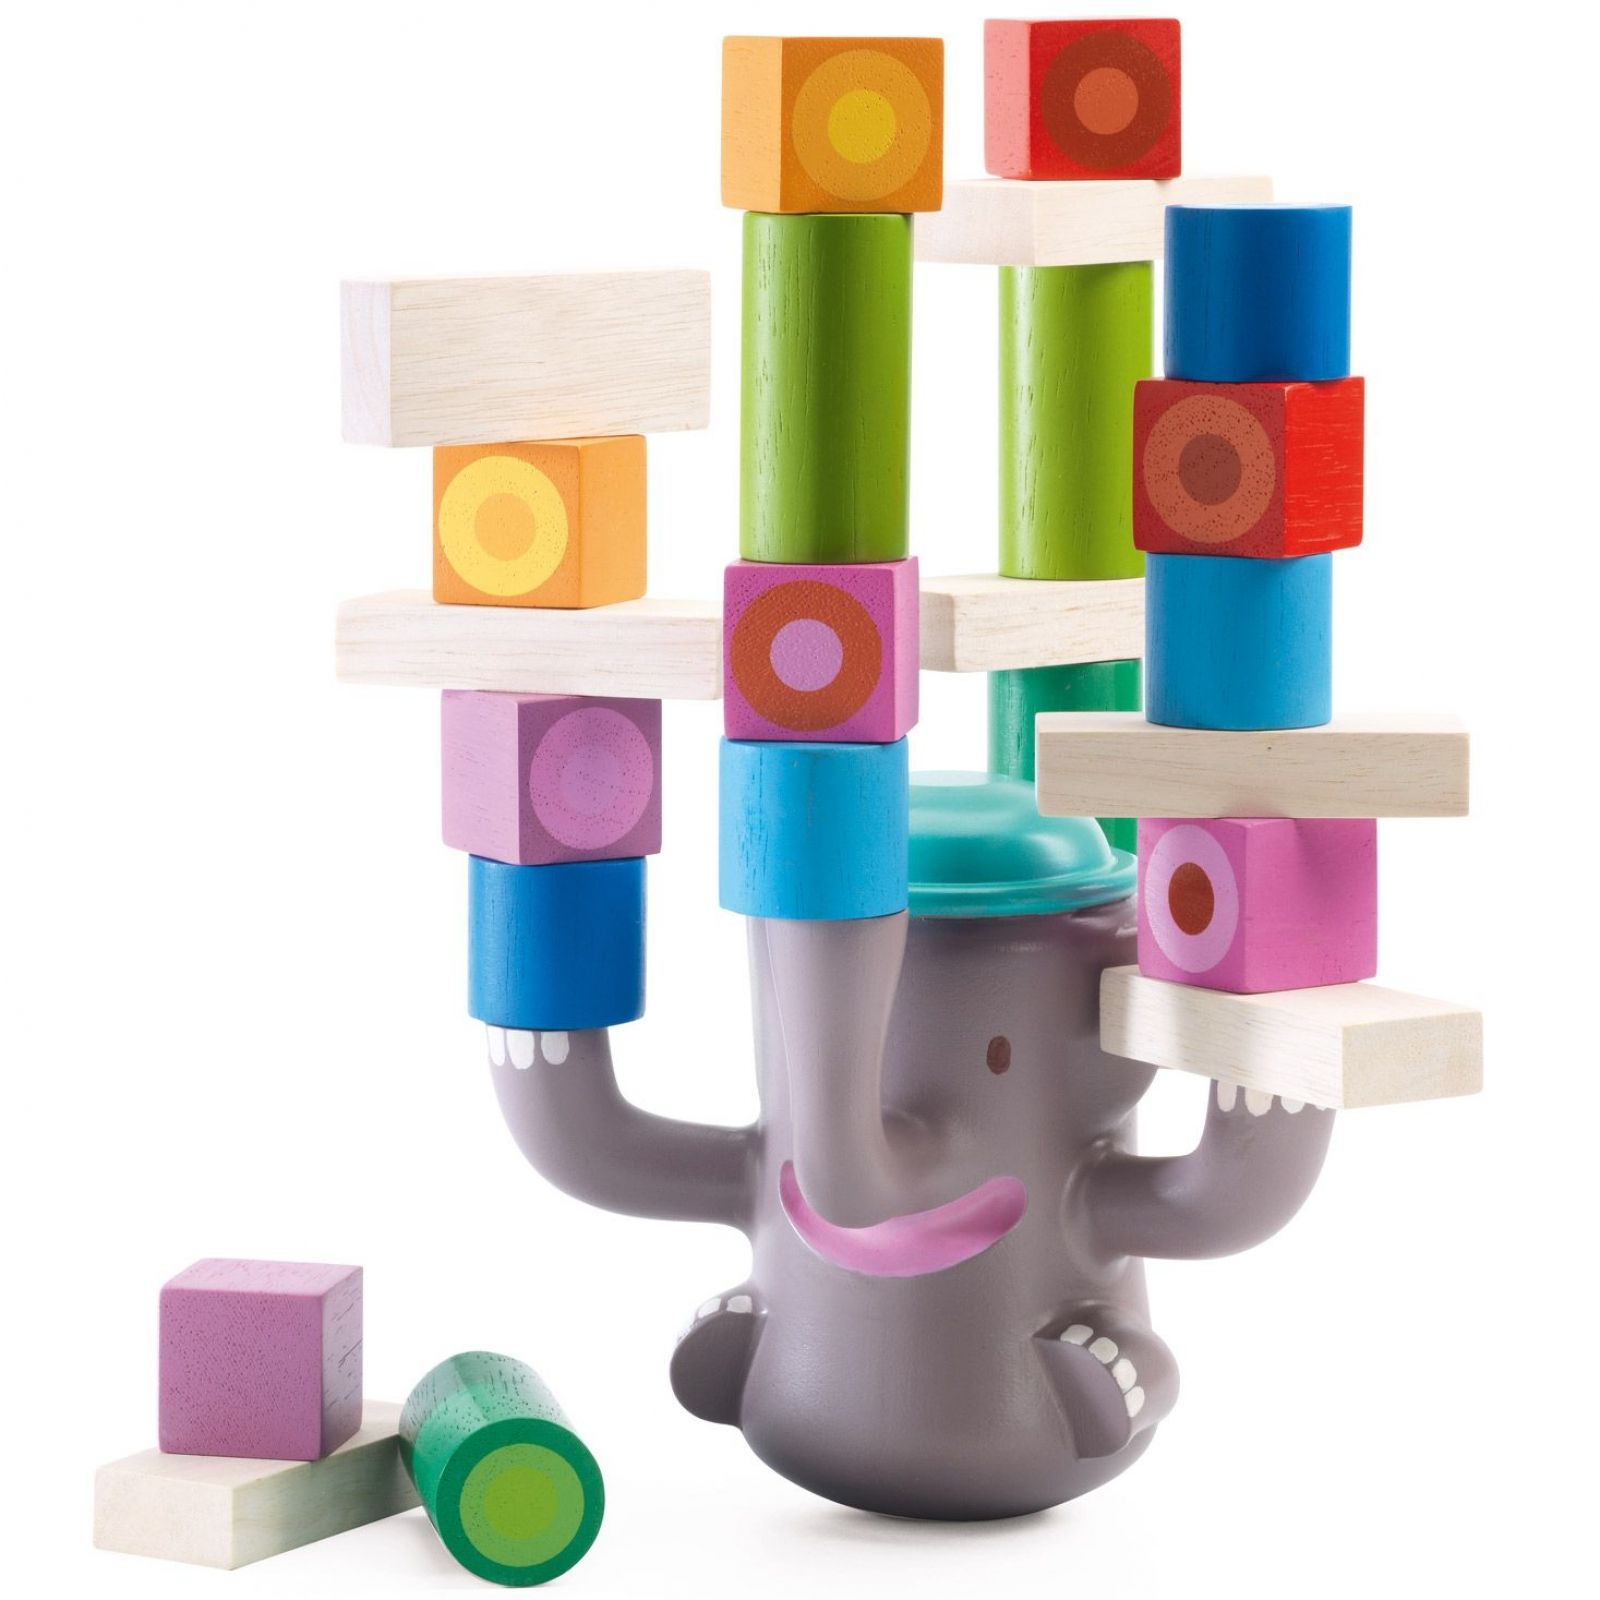 Djeco Bigboum early learning toy   Early learning toys ...